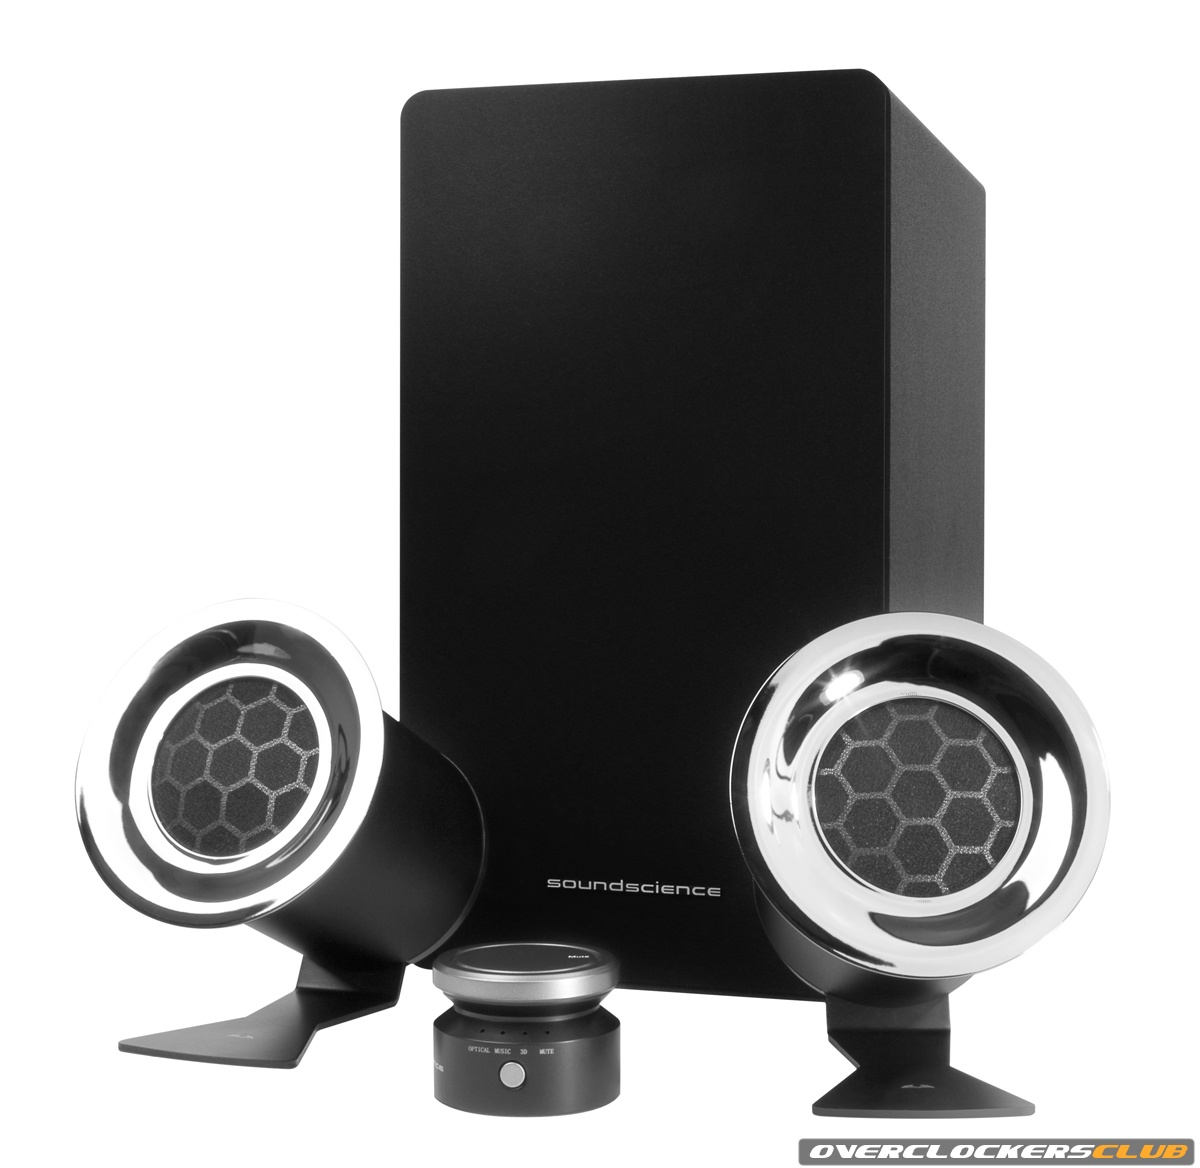 Antec soundscience Speaker System Announced